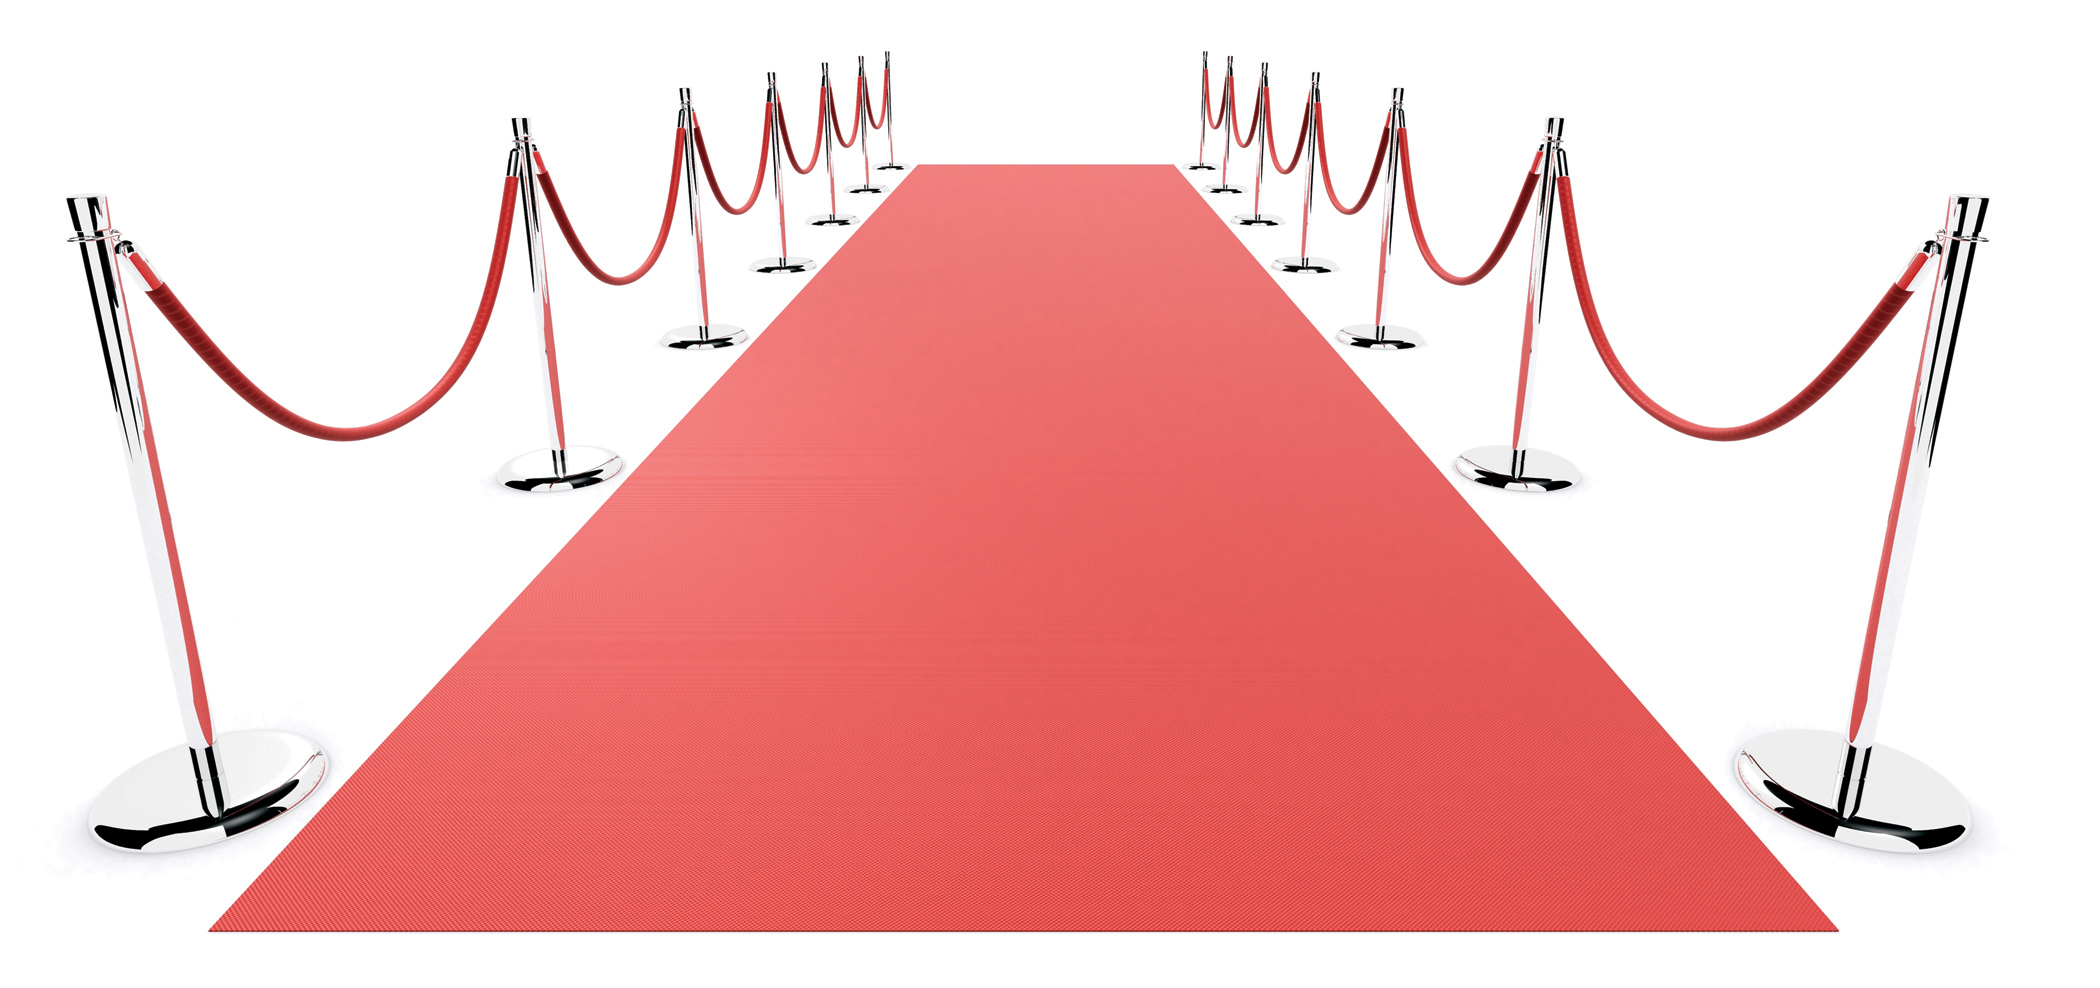 Roll Out The Red Carpet HTC To Host A Celebrate In Style